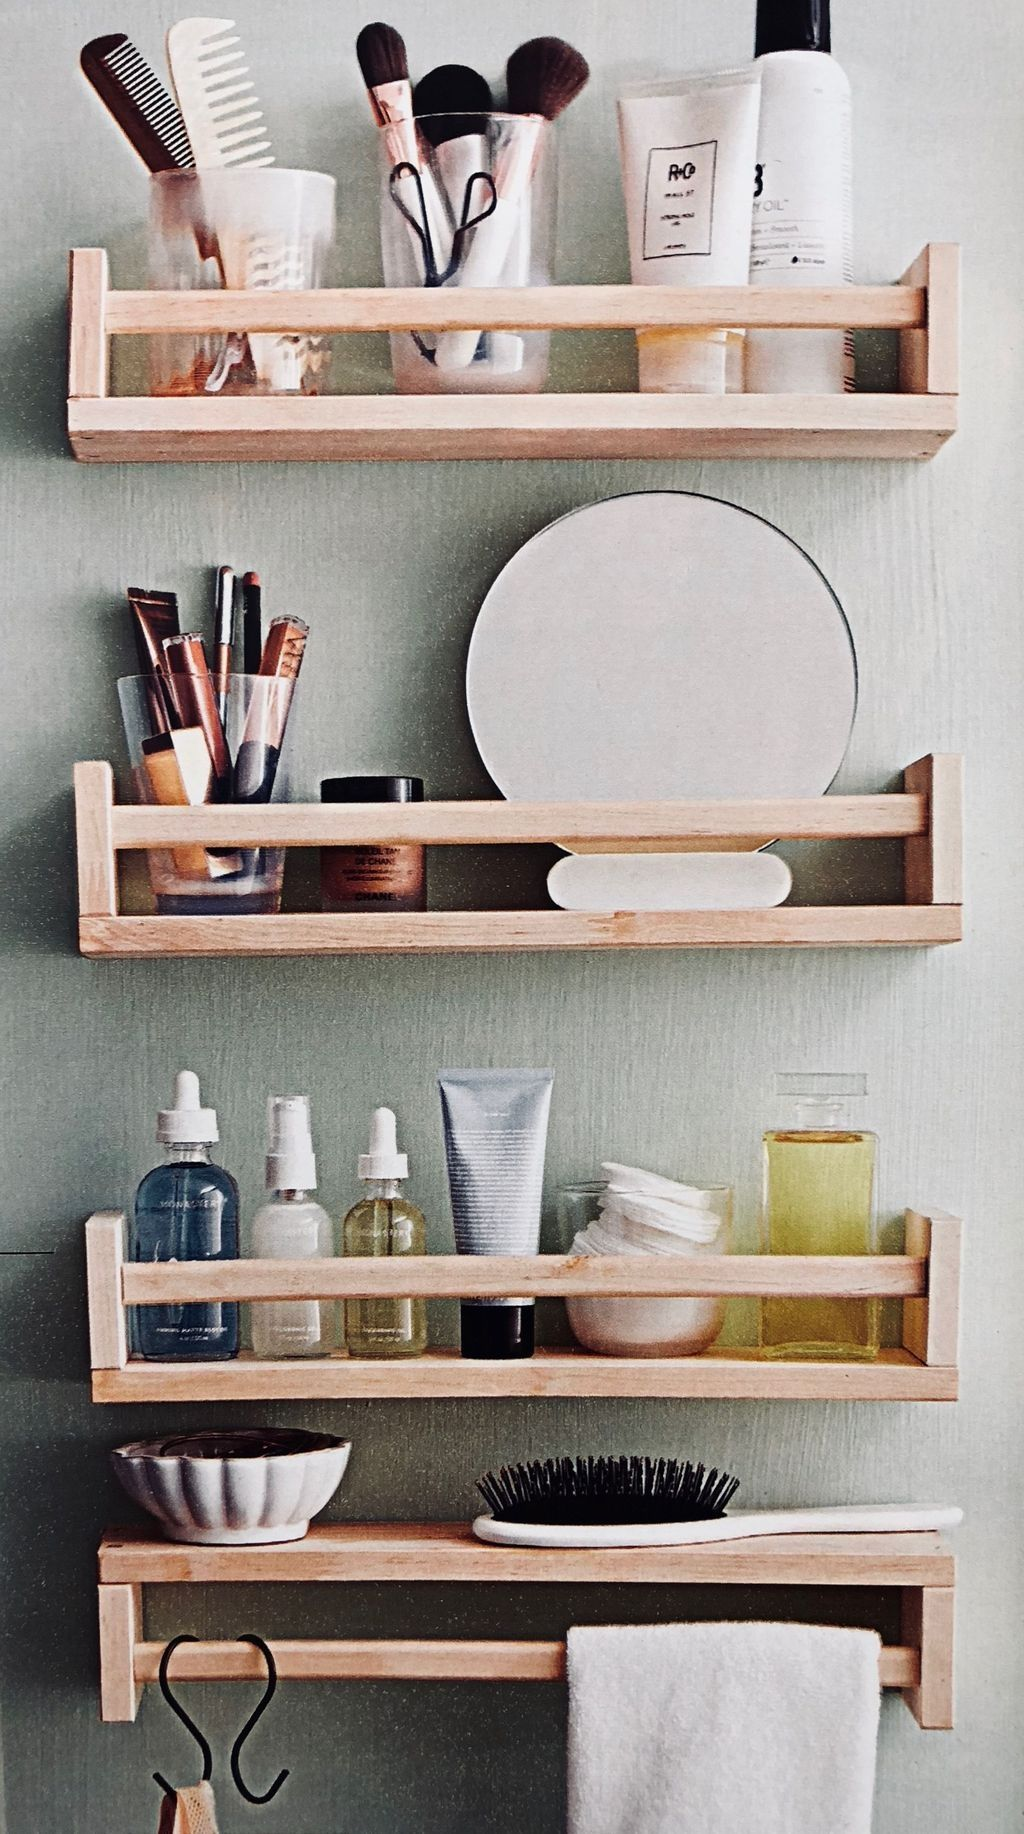 home decor for small spaces home decor homedecor #homedecor How to Make Hanging Bathroom Storage for Small Spaces